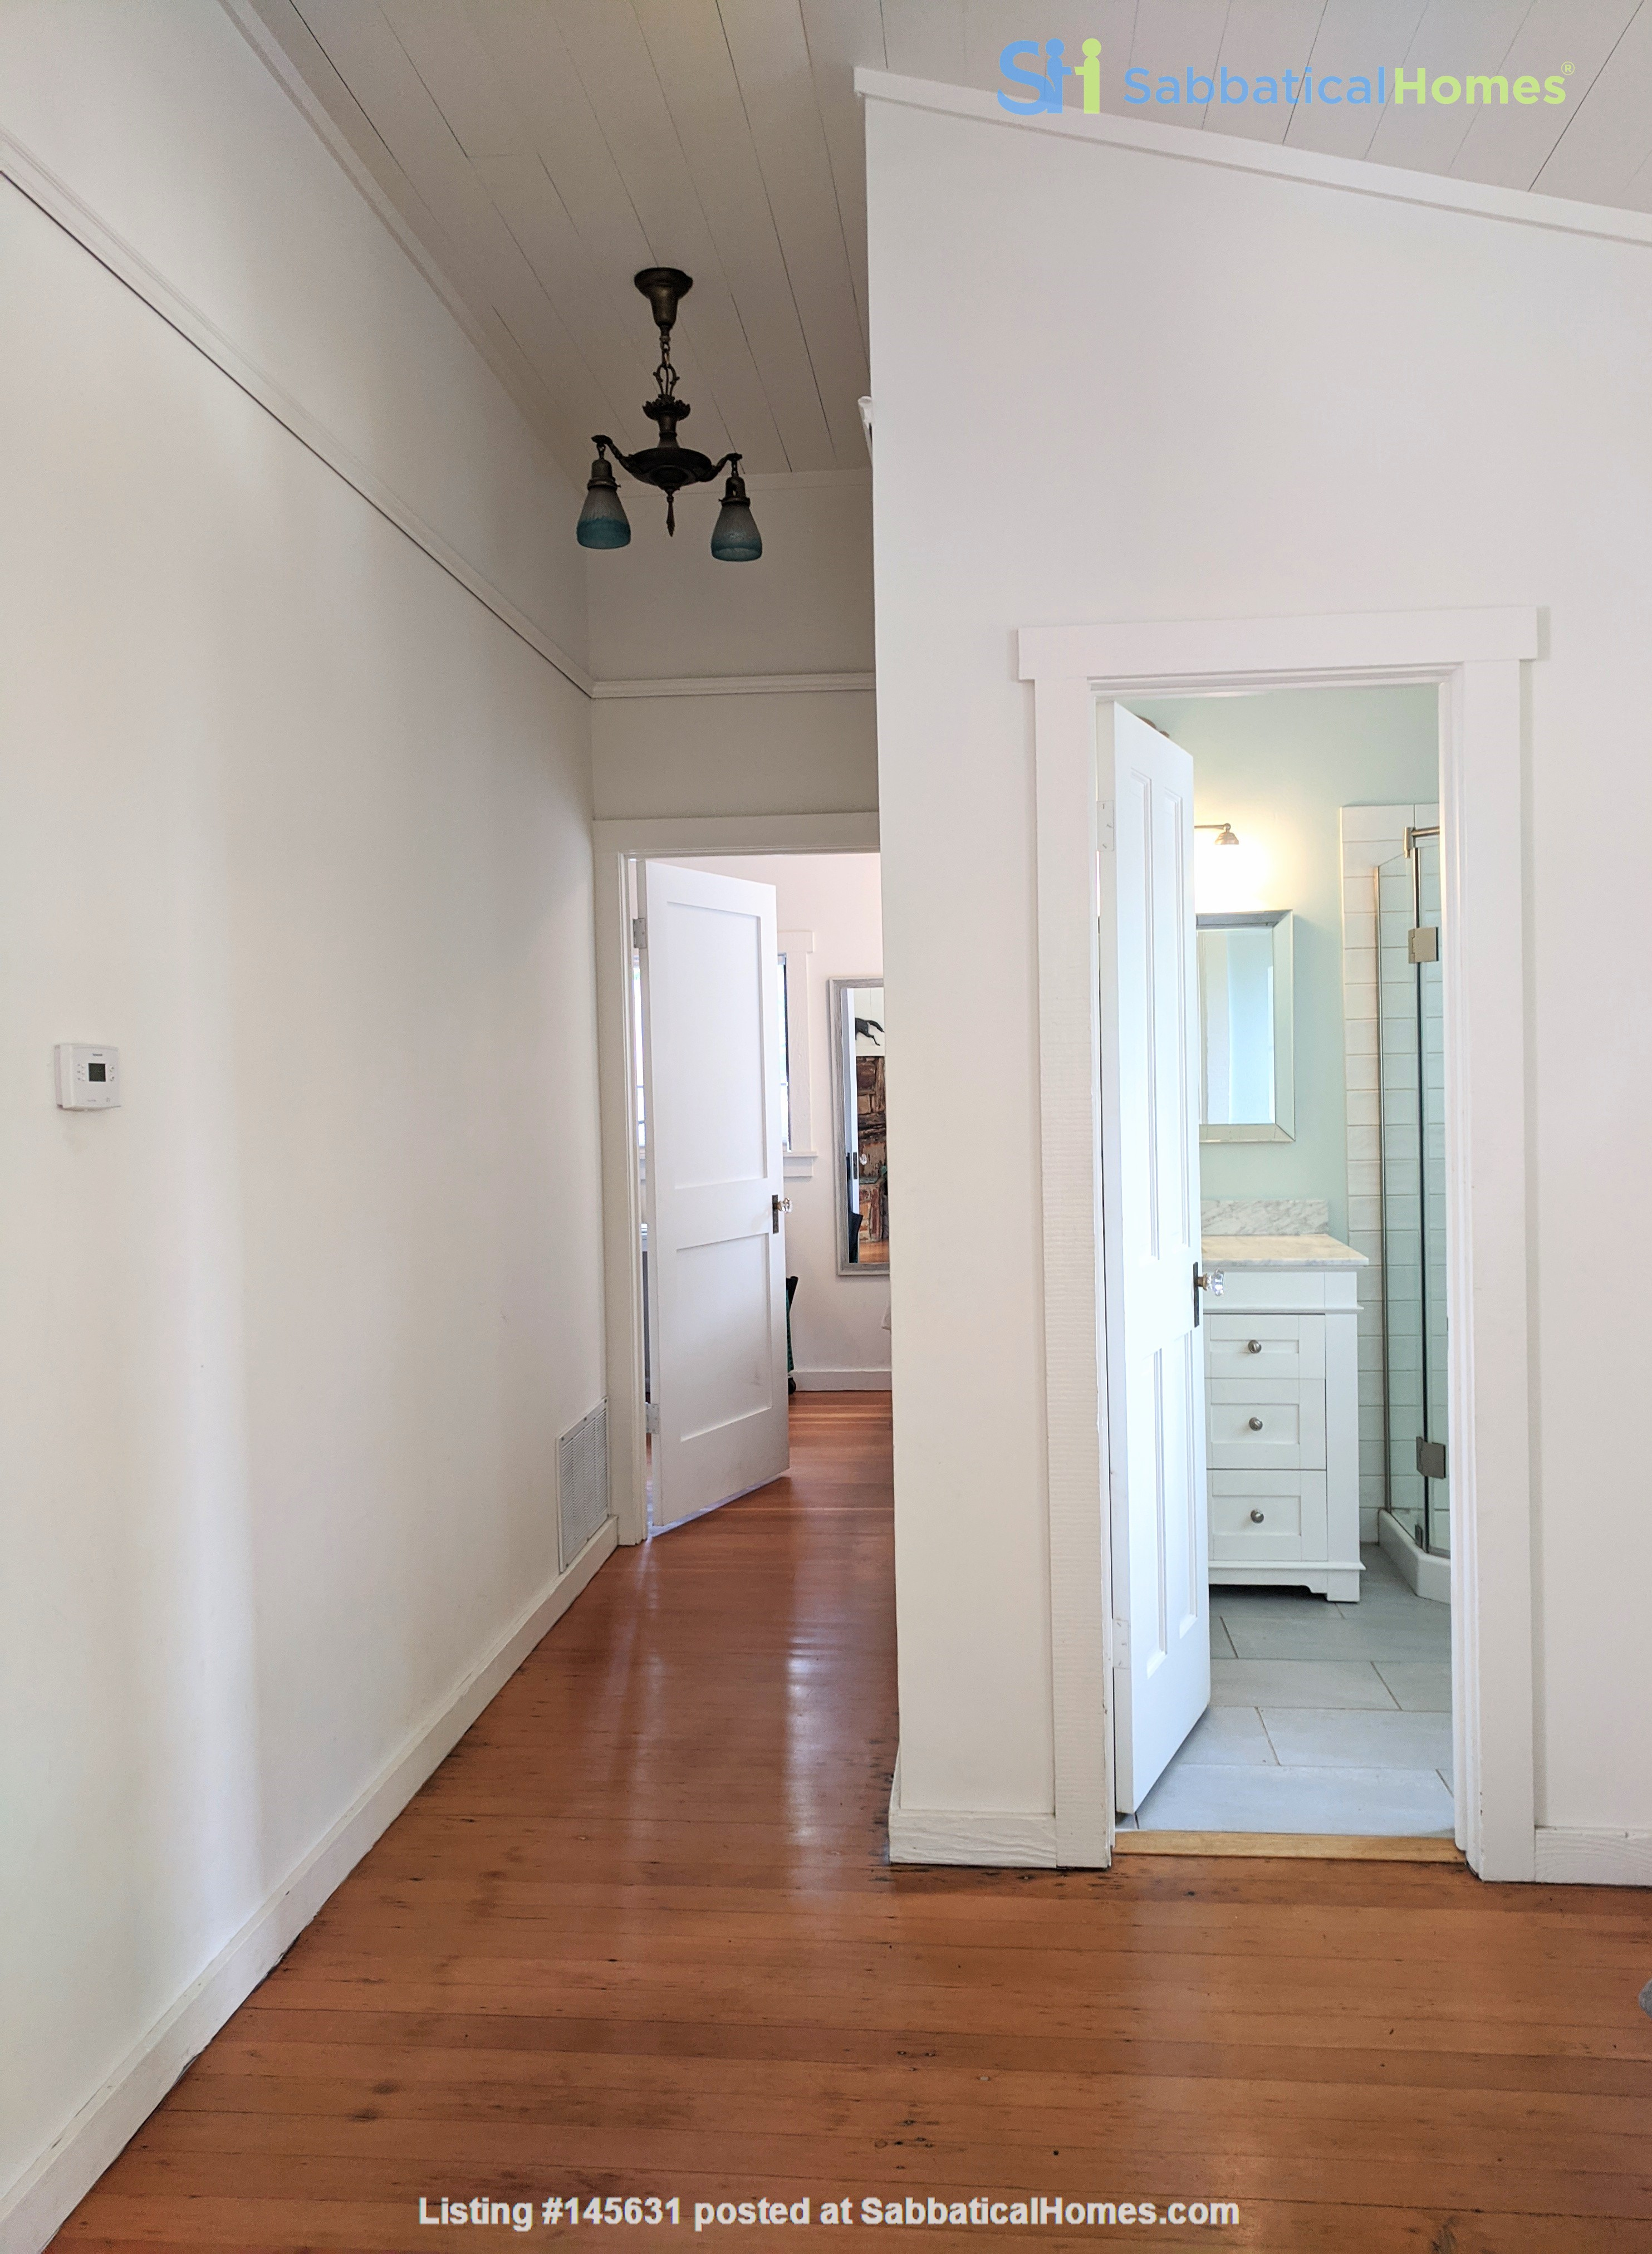 CHARMING PRIVATE COTTAGE 1 BR/1 BA + Office/studio space (720sft) Home Rental in San Rafael, California, United States 5